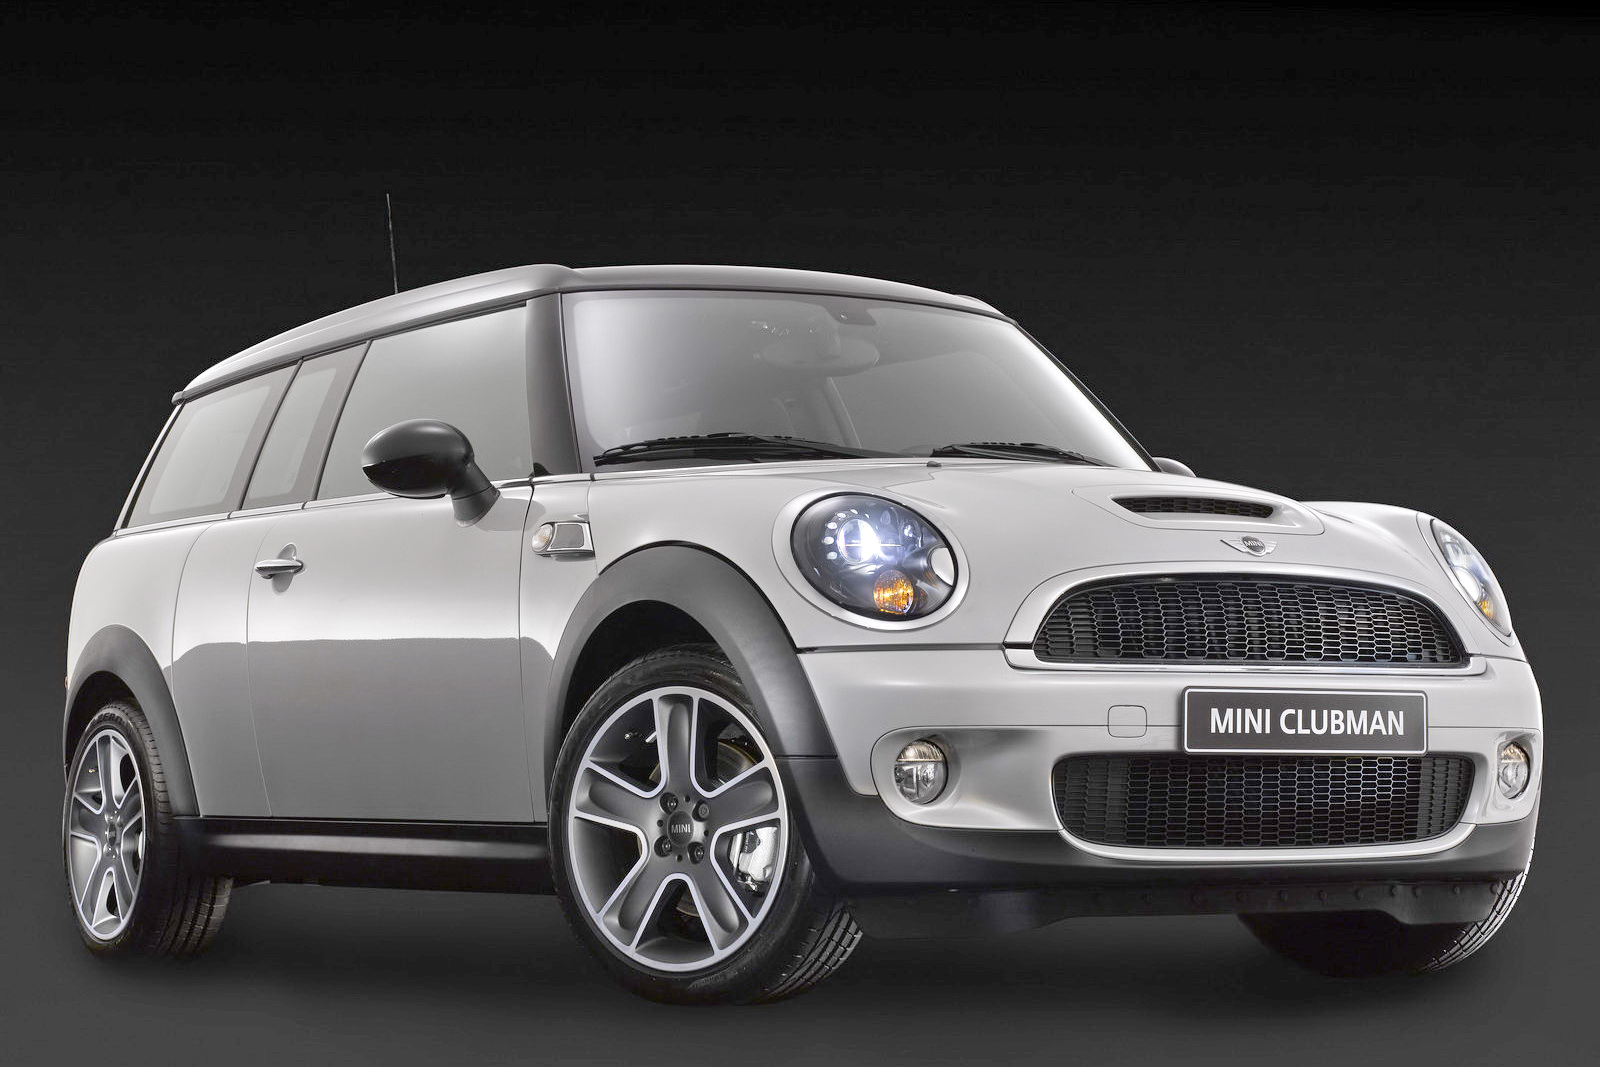 used new cooper mini reveals clubman soho special edition cars parts 1 cooper mini clubman. Black Bedroom Furniture Sets. Home Design Ideas